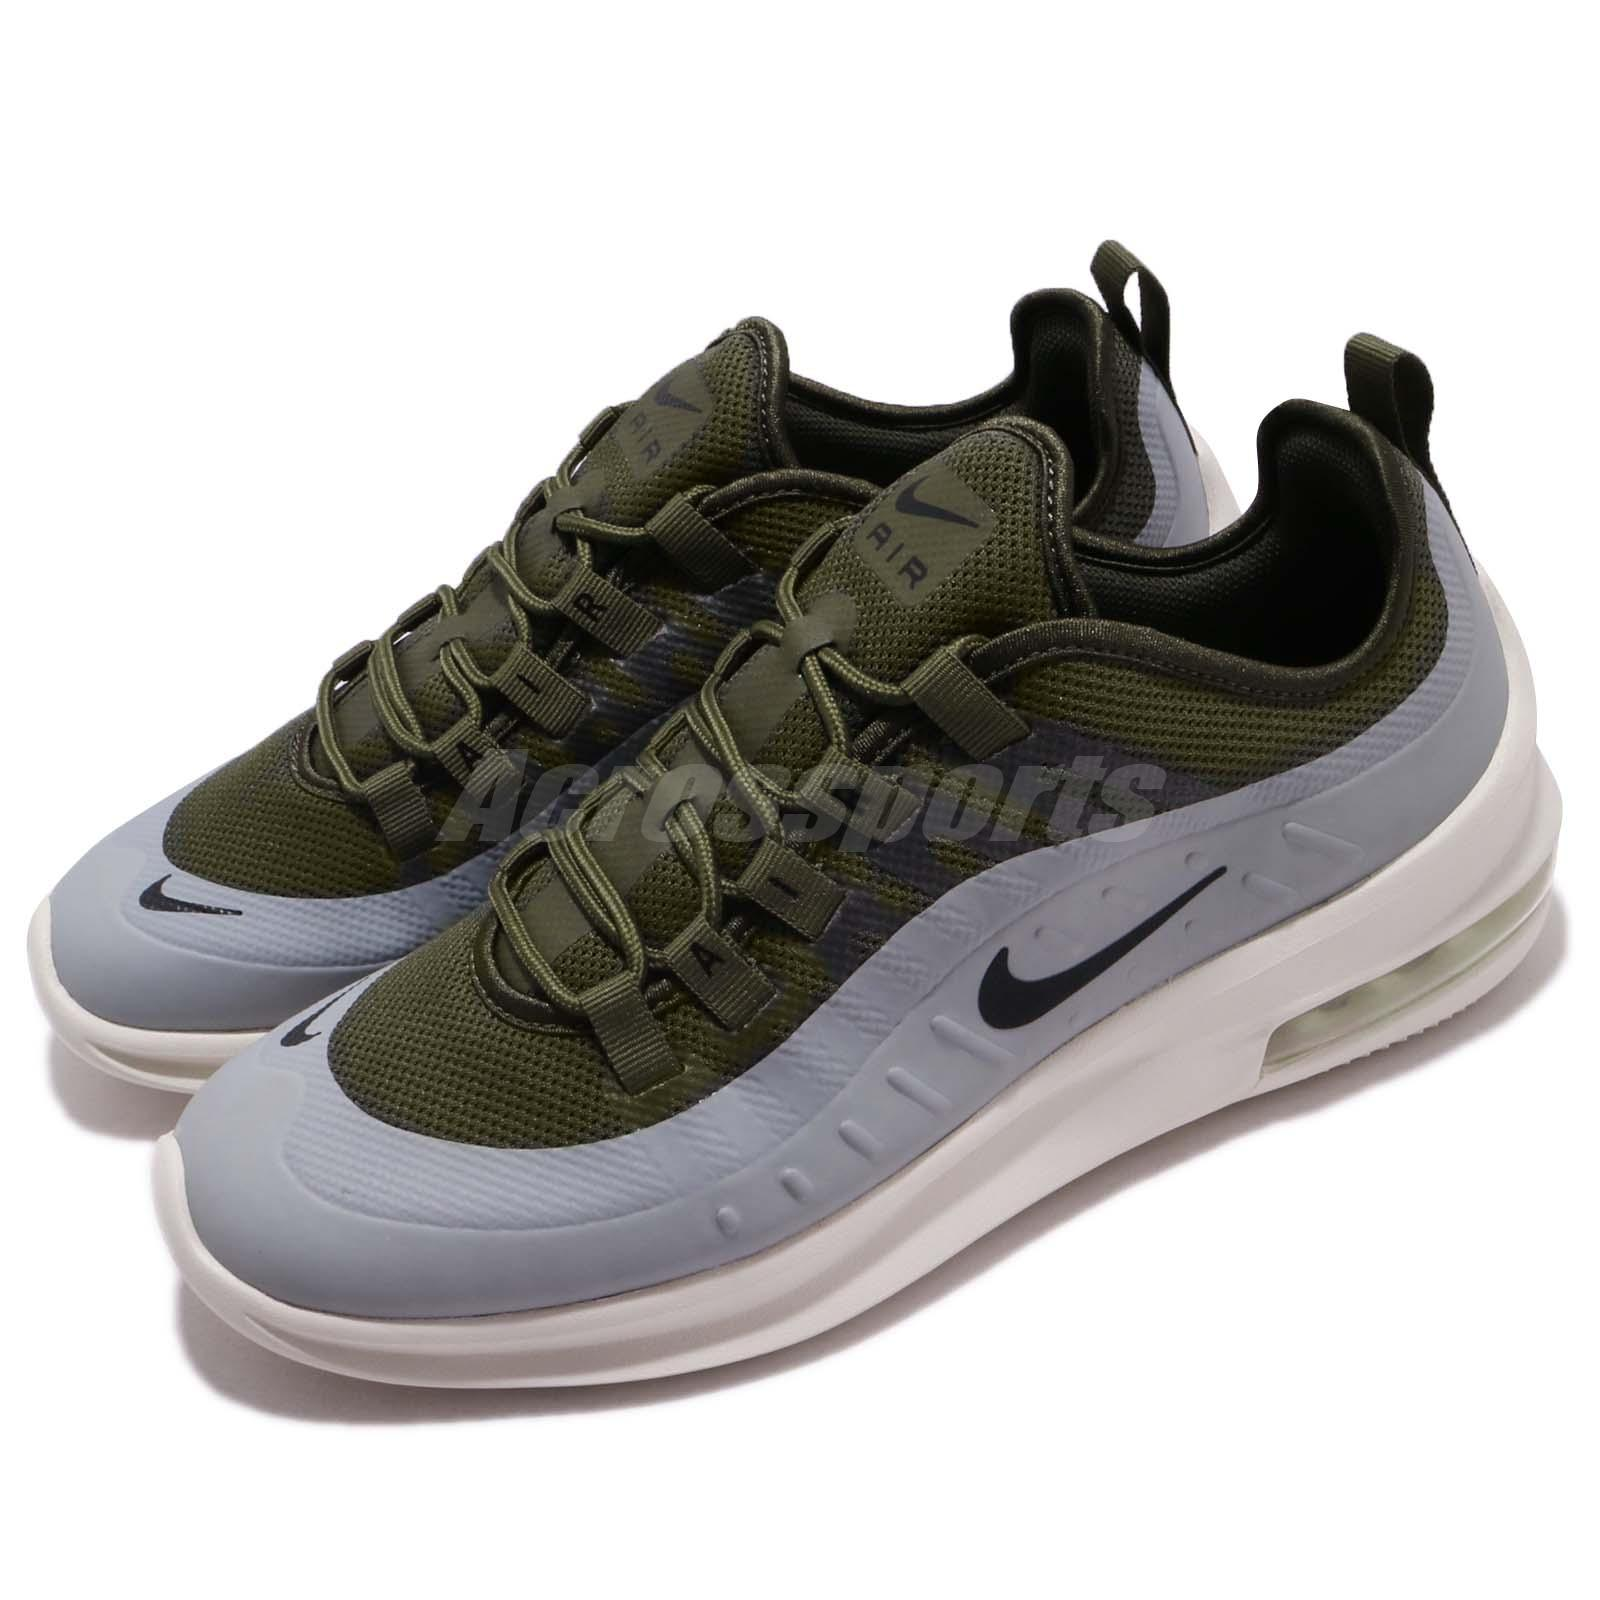 12246a14e3 Details about Nike Air Max Axis Cargo Khaki Medium Olive Men Running Shoes  Sneakers AA2146-300